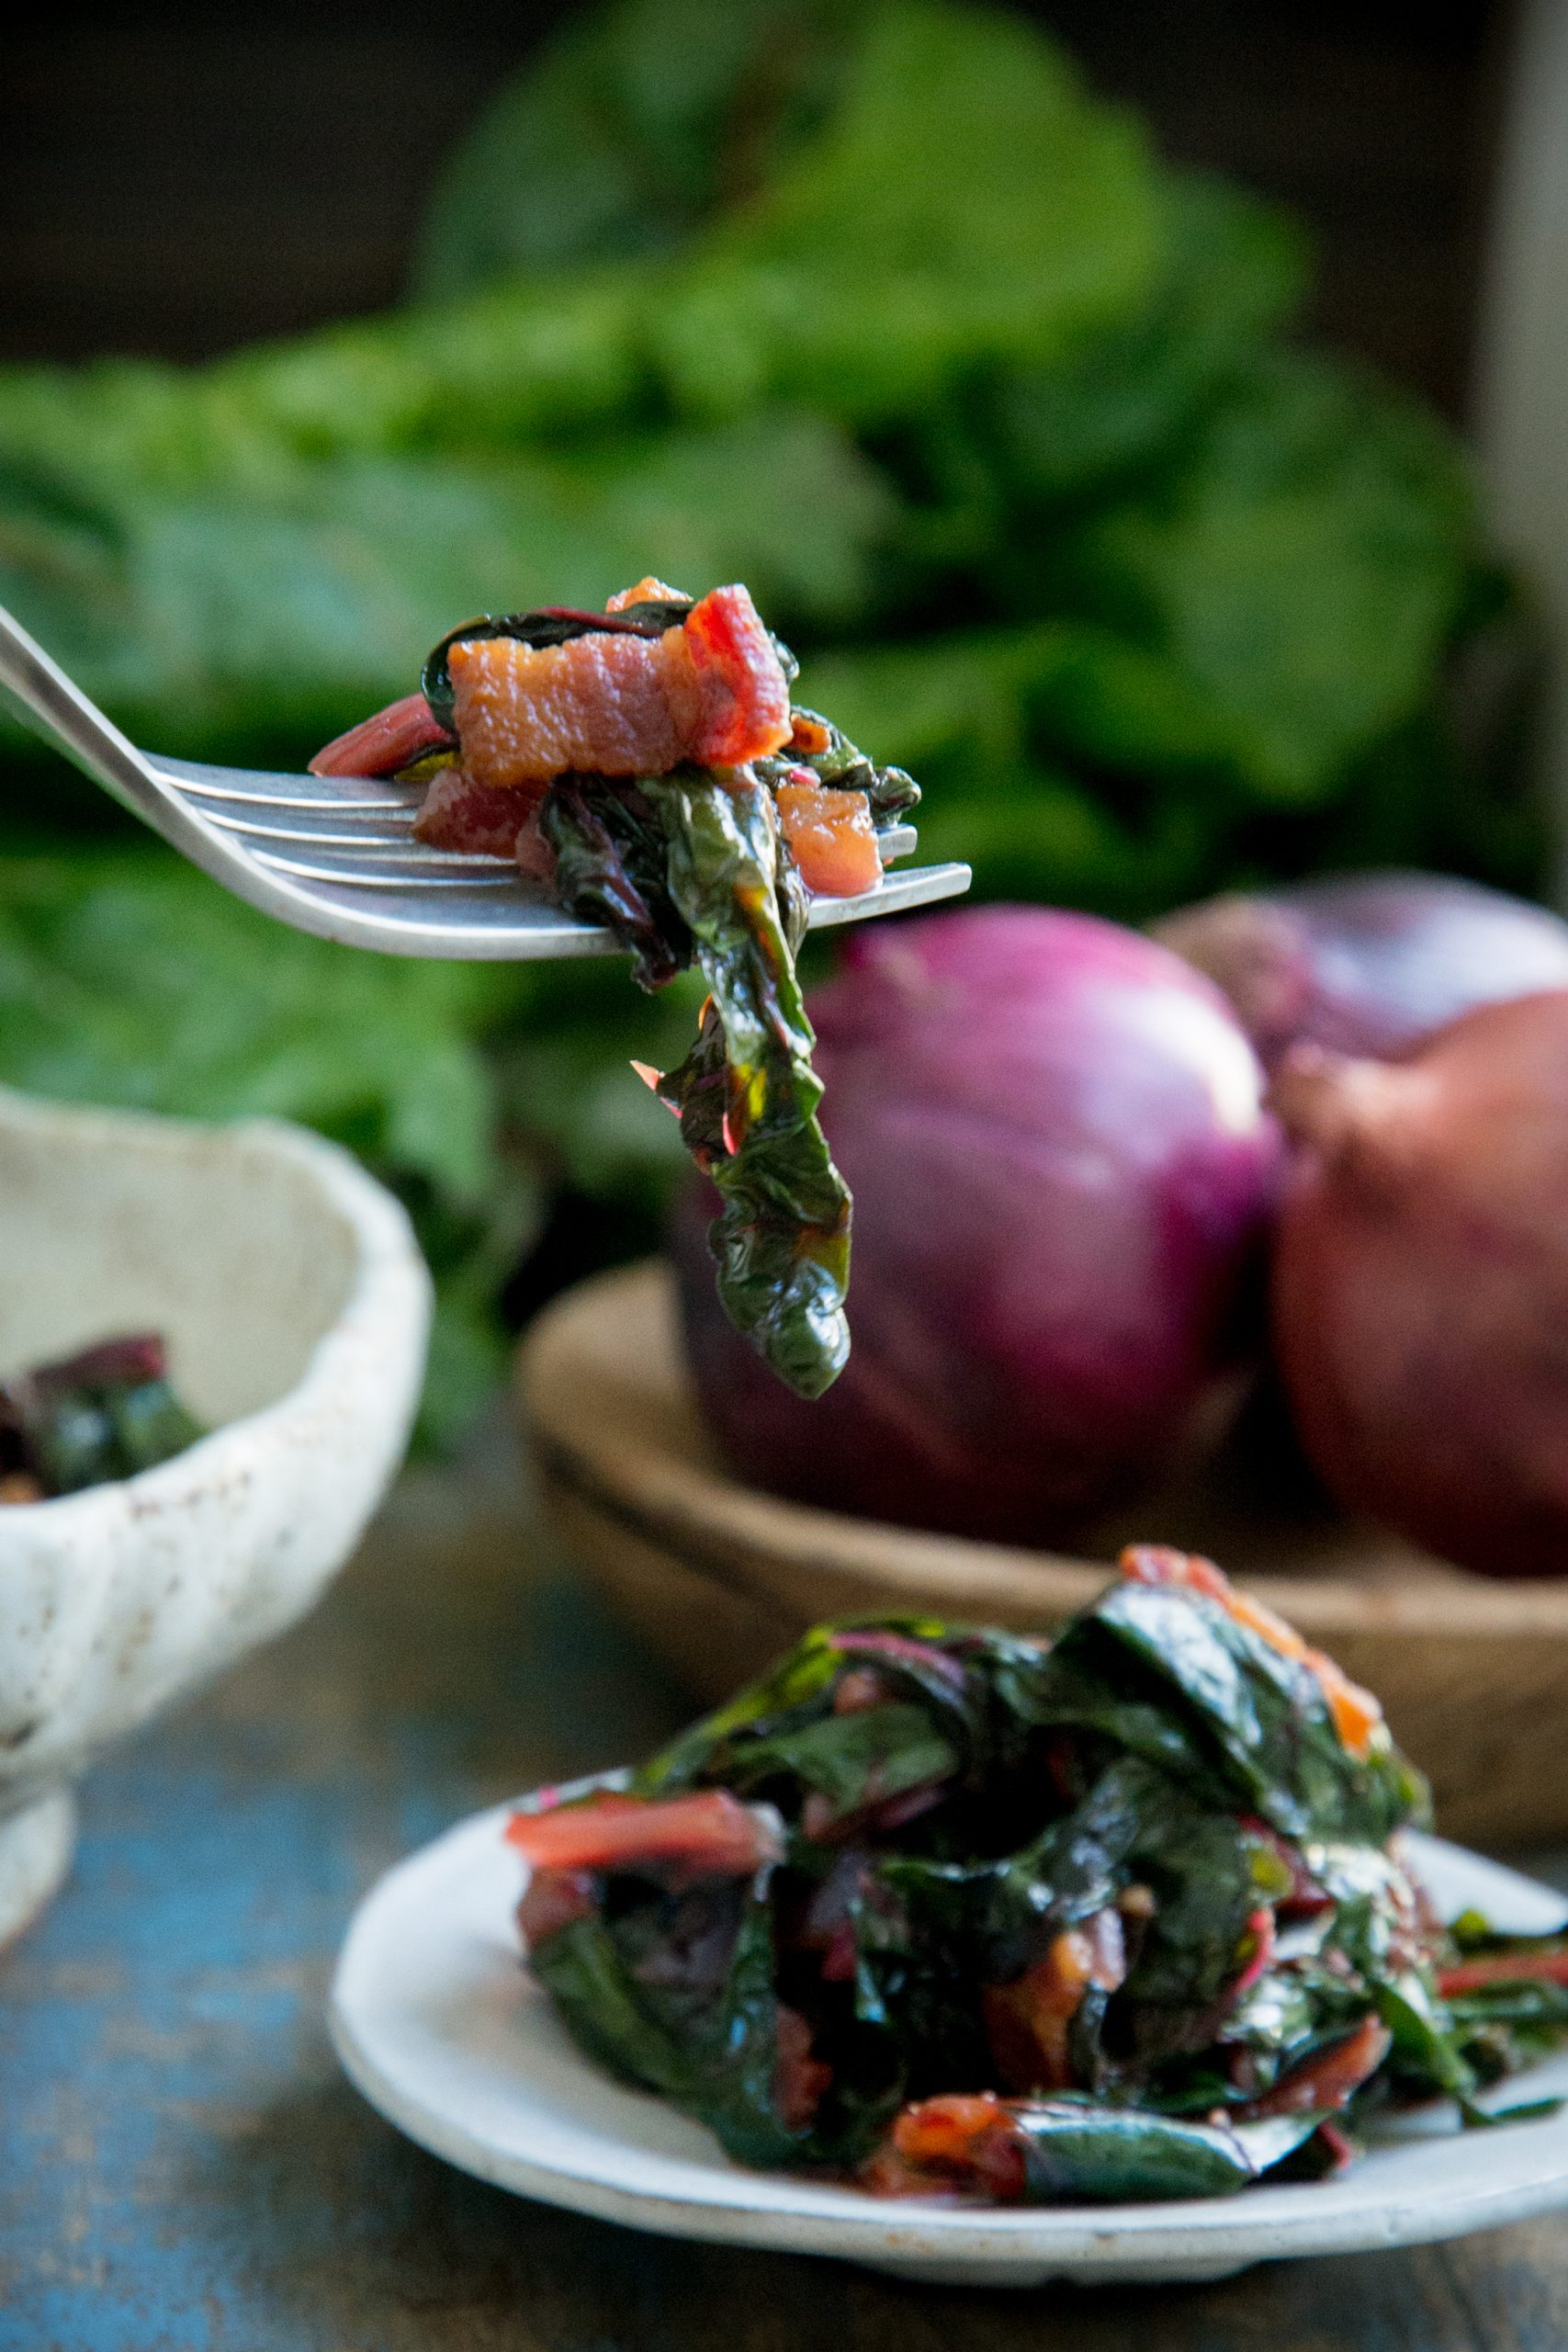 Wilted chard with bacon and garlic on a fork.